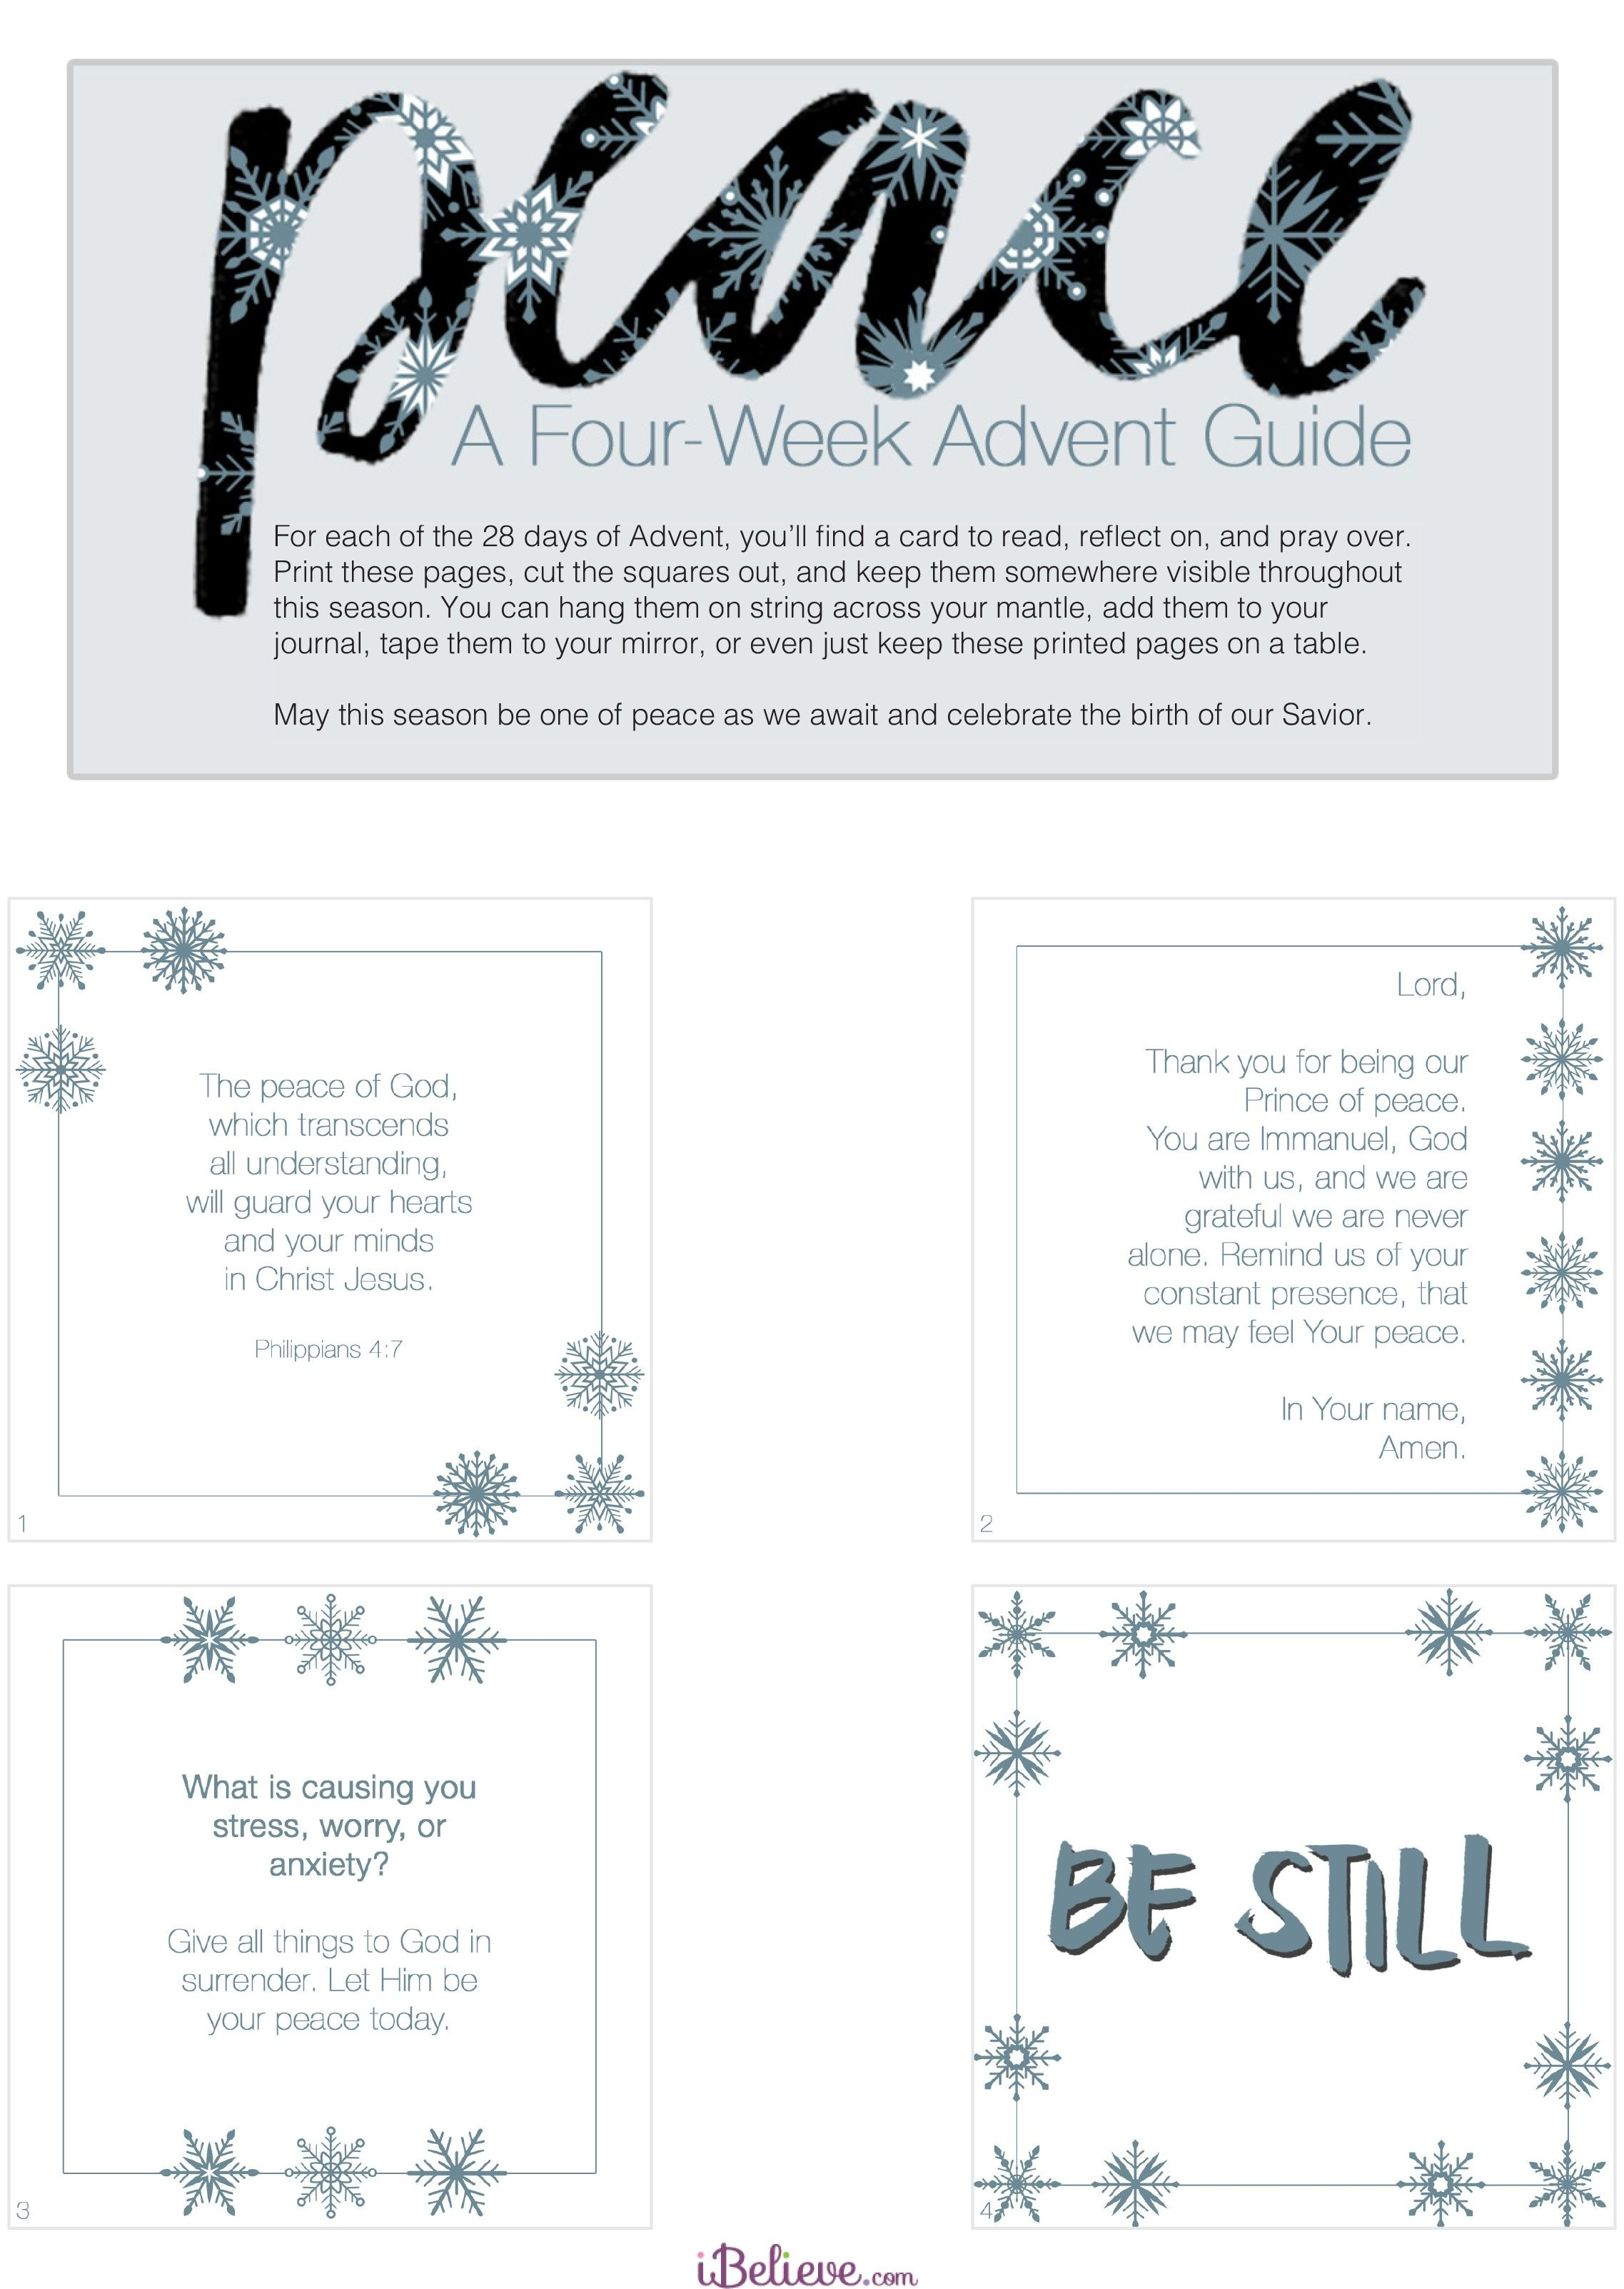 Free Downloadable - A 4-Week Advent Guide For Peace #advent - Free Printable Advent Bible Study